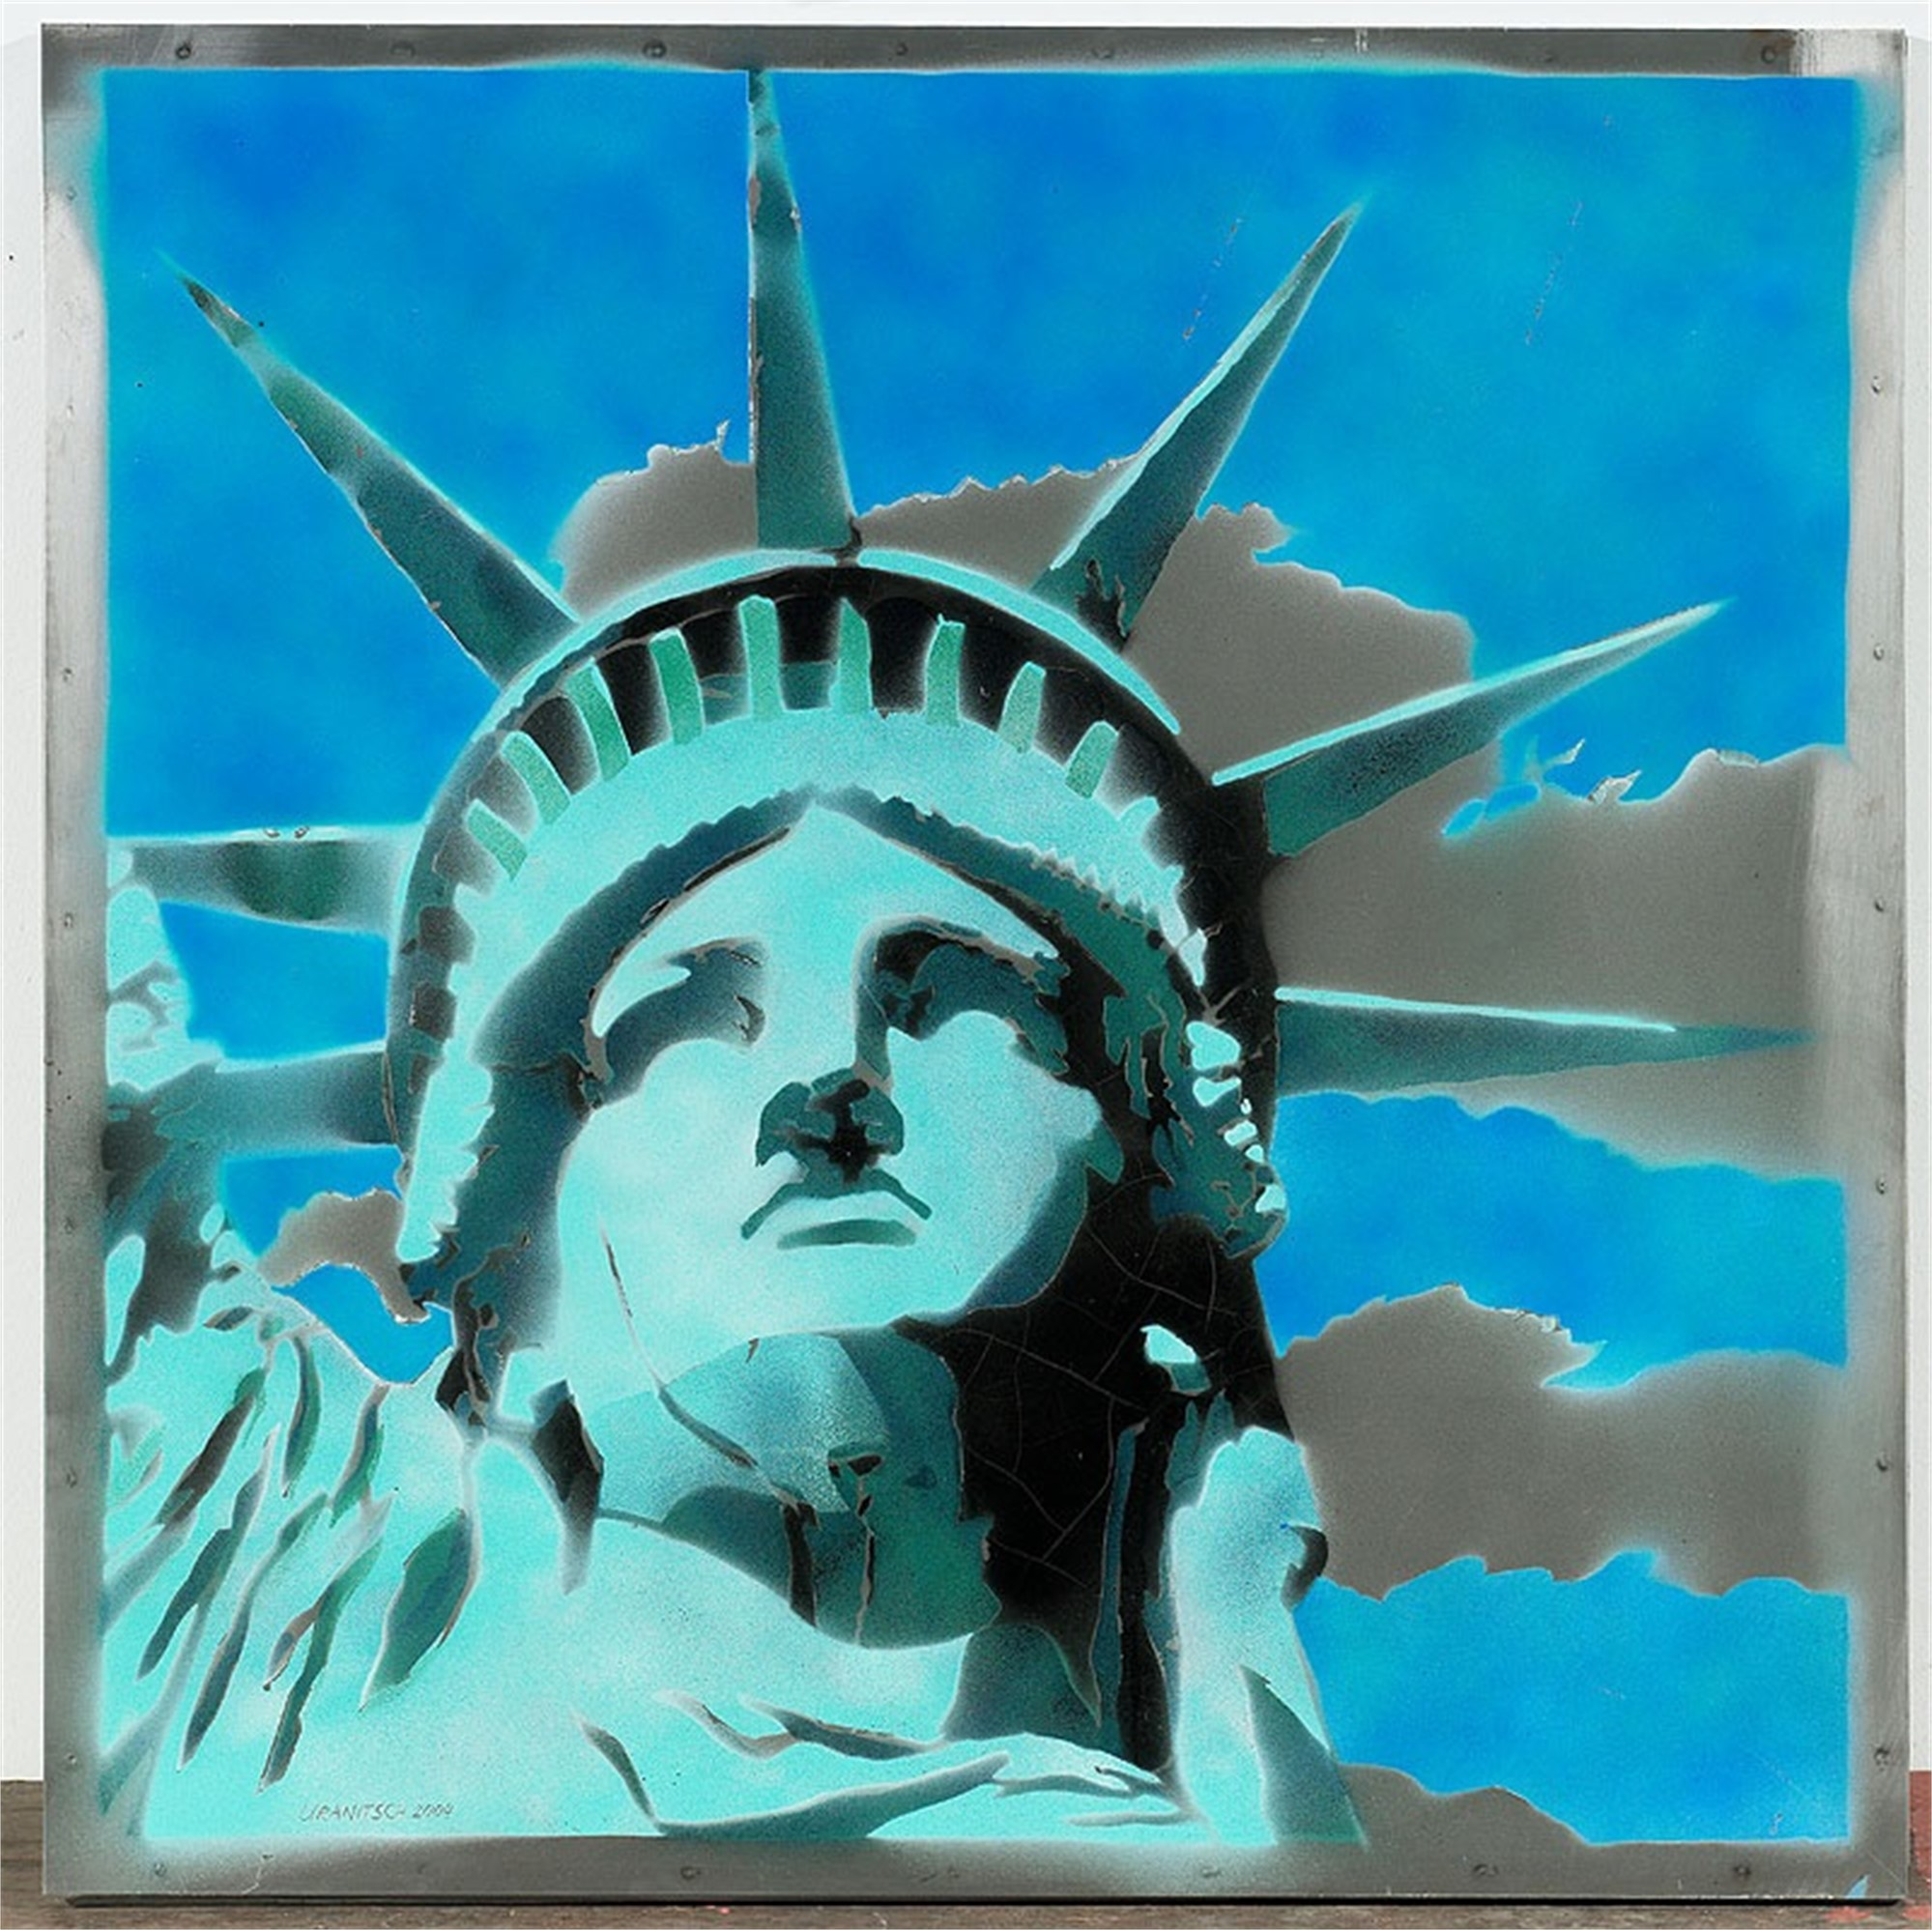 Statue of Liberty by Wolfgang Uranitsch